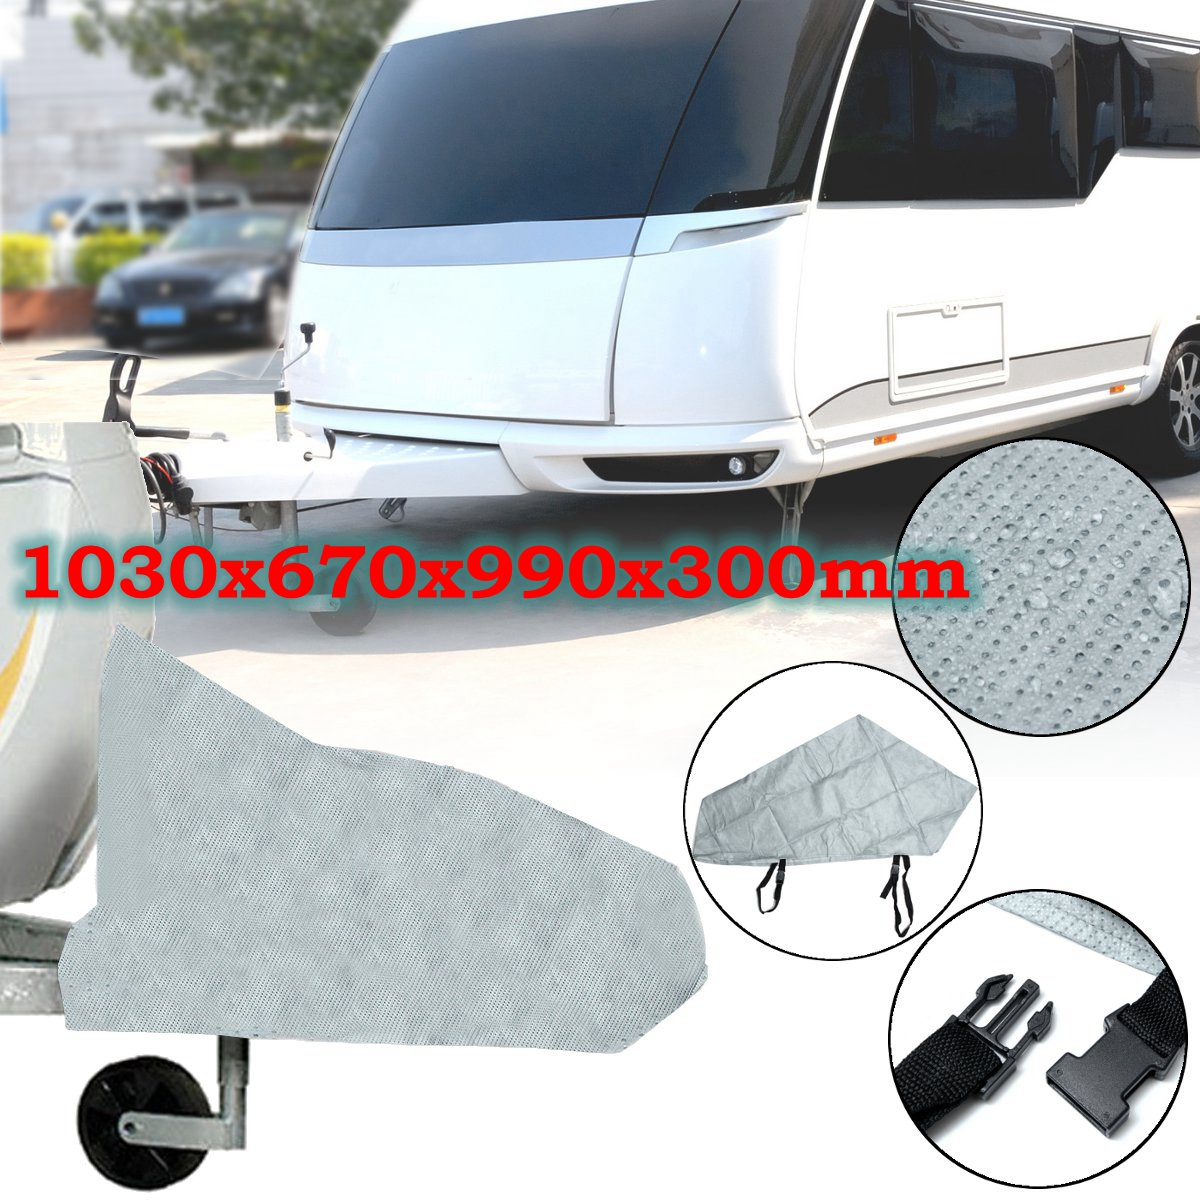 Automobiles & Motorcycles Grey Waterproof Caravan Tailer Towing Hitch Coupling Lock Cover Reflective Coating Material Rain Dust Protect Selected Material